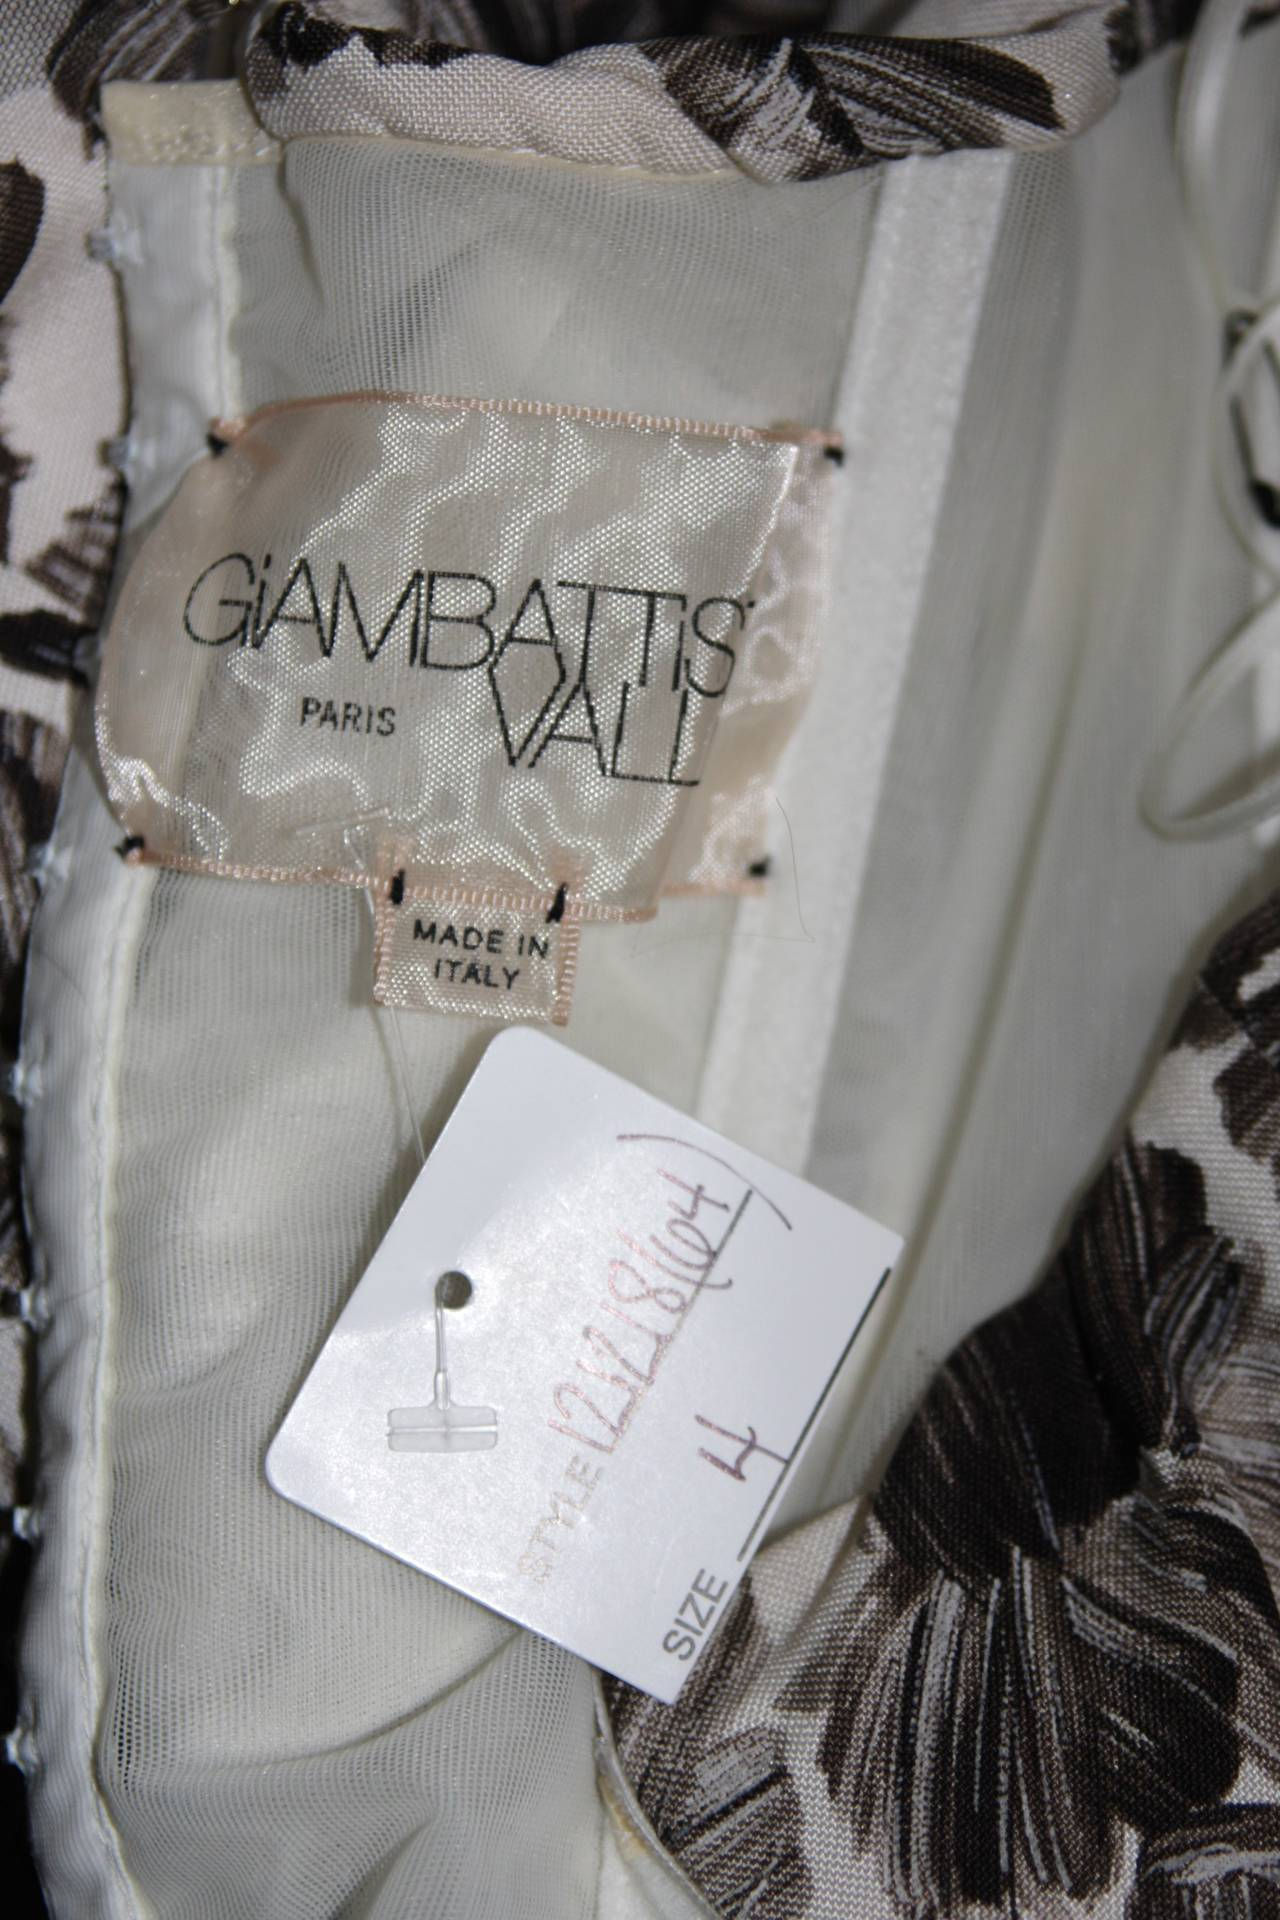 GIAMBATTISTA VALLI White Strapless Floral Print Rhinestone Detail Dress Size 40 For Sale 3